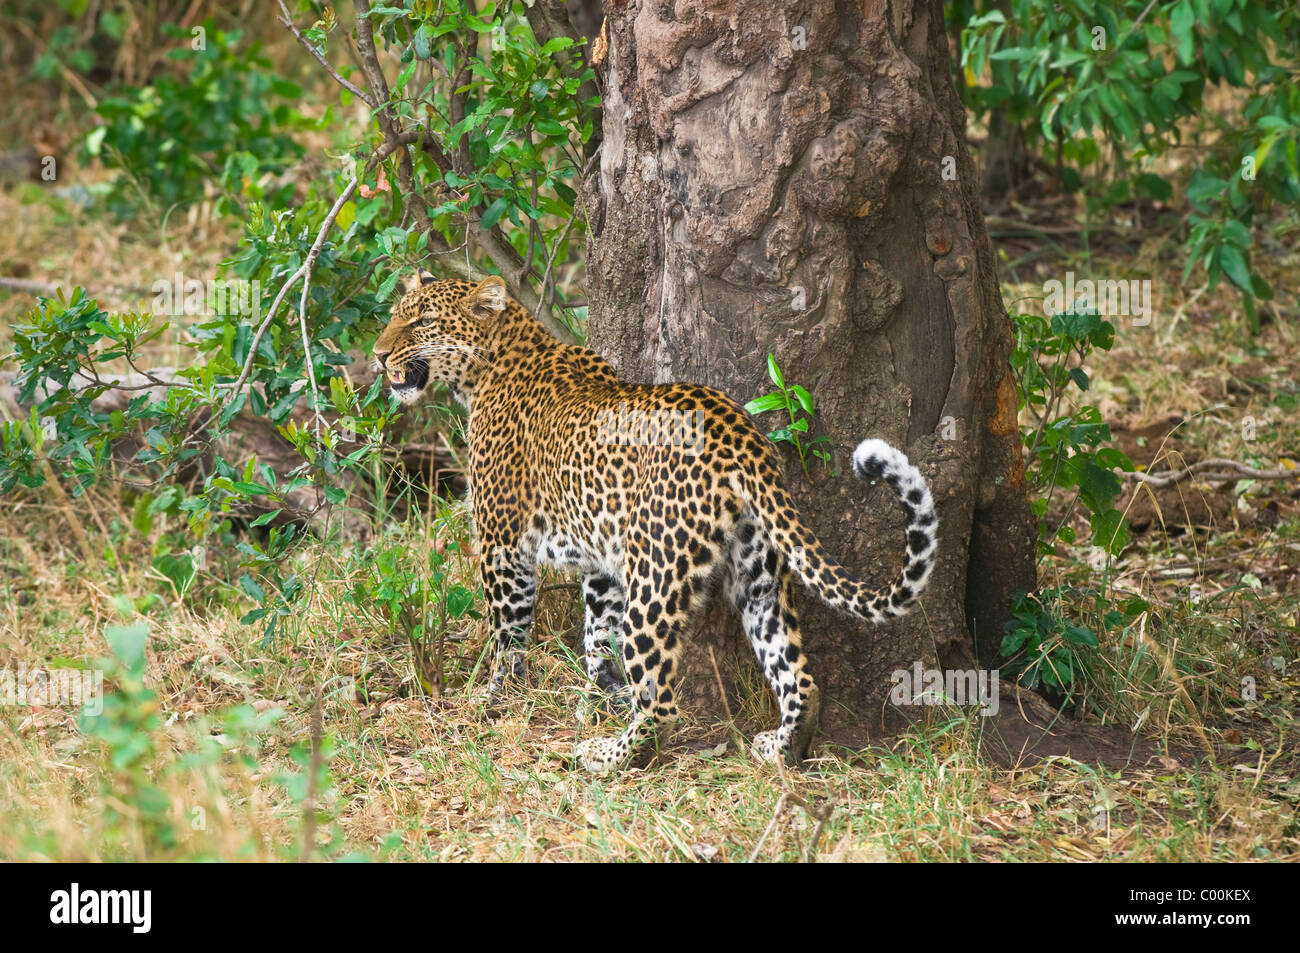 Panthera pardus - adult male leopard snarling and scent-marking against tree - Masai Mara National Reserve, Kenya, - Stock Image